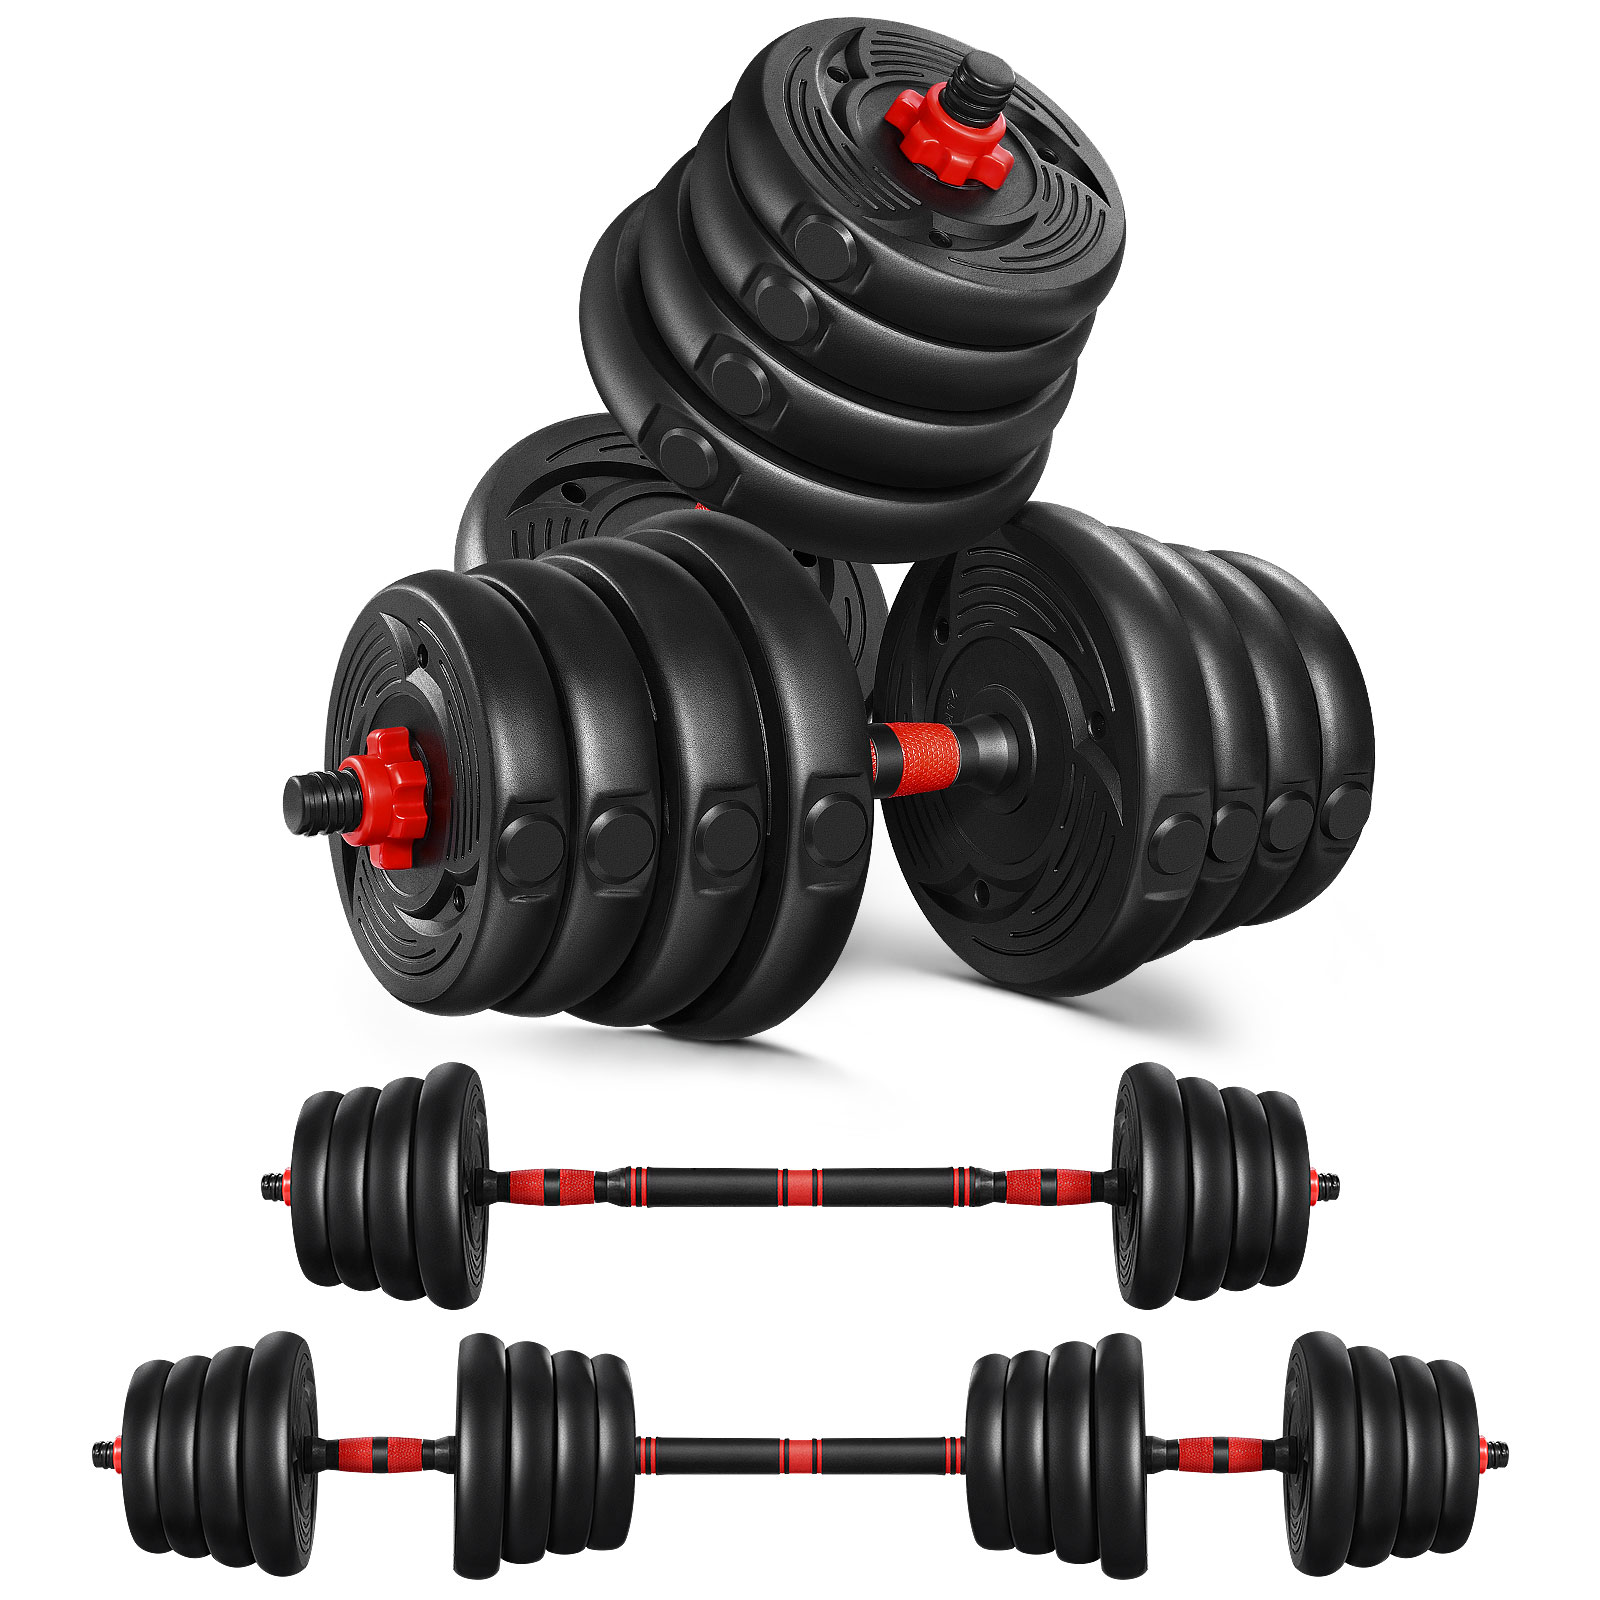 ETEREAUTY Dumbbells Set, 3 in 1 Adjustable Solid Weight Dumbbell Set-5/10/15/20/30KG, Hexagon Nut-Safe and Durable Dumbbells with Connecting Rod Anti-Slip for Women Men Fitness,Home Gym Training